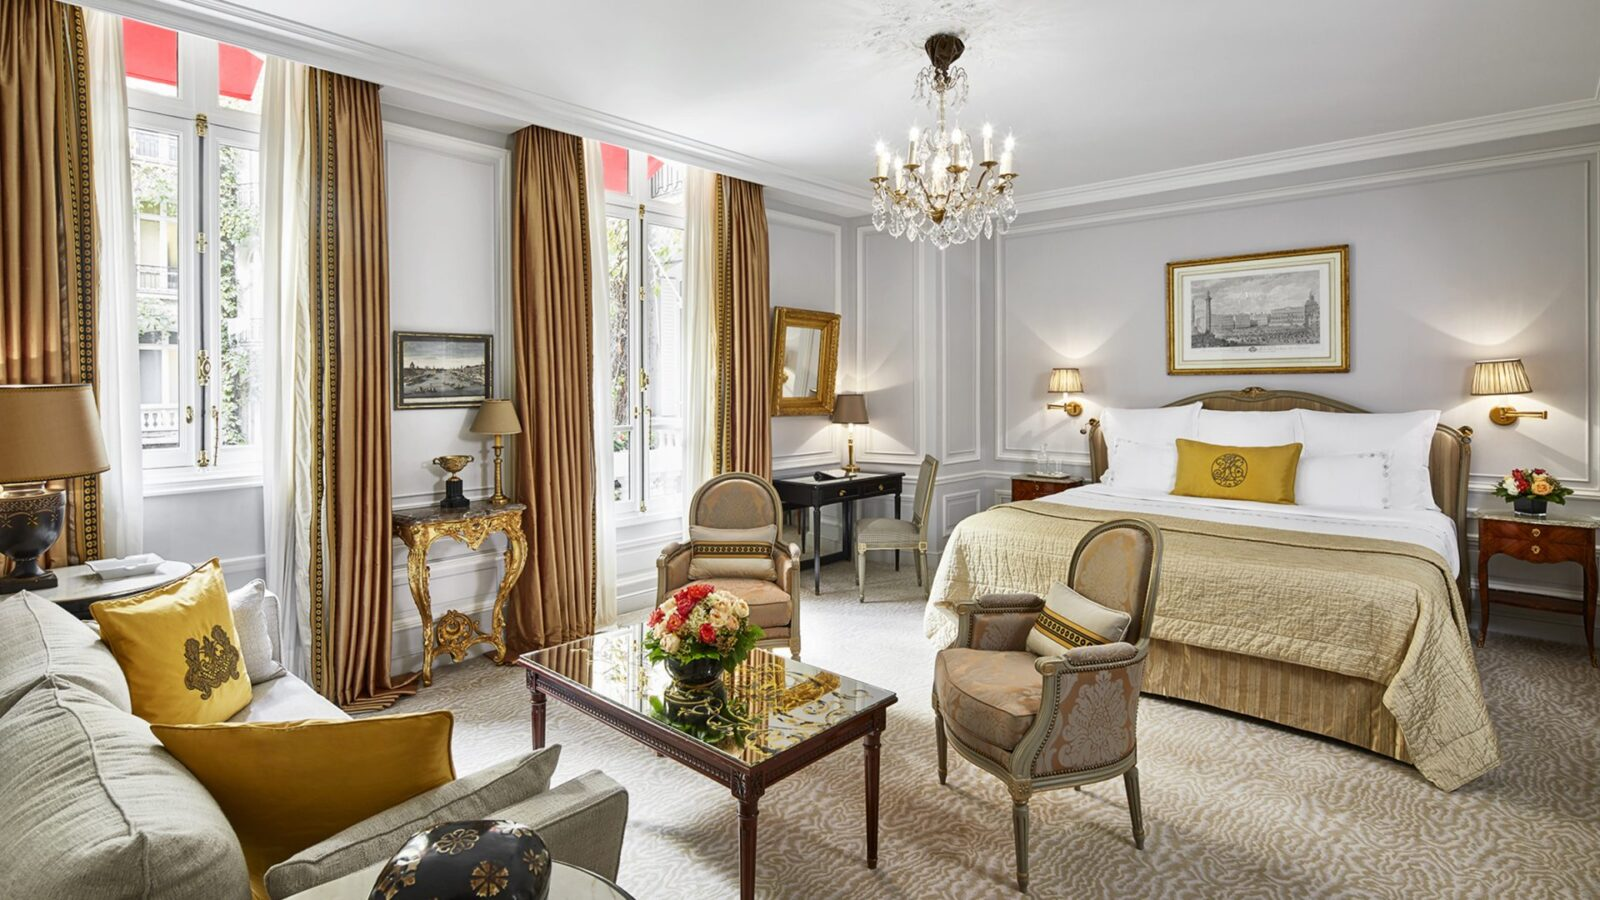 Junior Suite at Hôtel Plaza Athénée, Paris